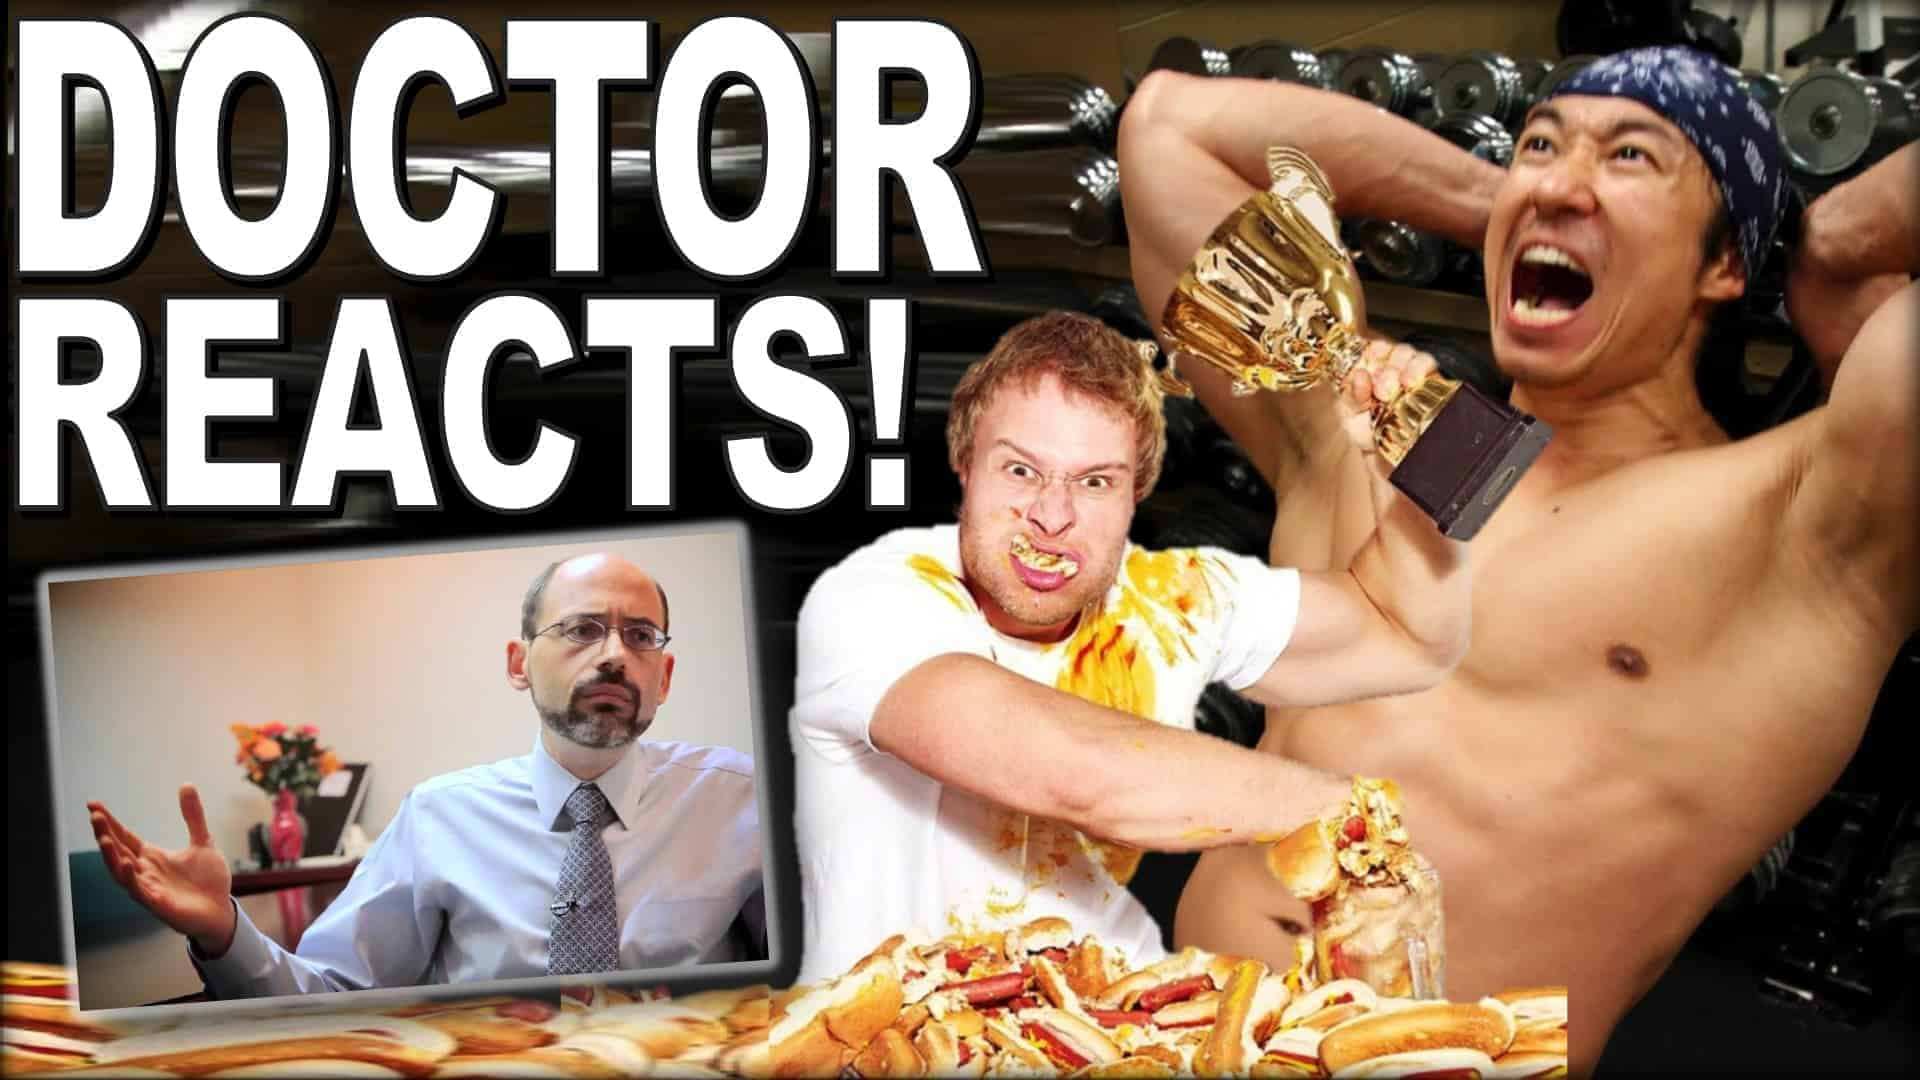 """The image is made up of four overlapping parts. At the top left, in large white lettering are the words """"Doctor Reacts!"""". Below this is a photograph of Dr, Michael Greger of Nutritionfacts.org. To the right of this image, is one of Furious Pete, creator of extreme eating and motivational fitness videos, at a hotdog eating completion. He is surrounded by hotdogs, has chewed hotdogs coming out of his mouth and down his shirt and has a fistfuls of hotdogs in his left hand and a small gold """"winners"""" cup in his right. The final image, towards the righthand edge is Mike Chang creator of """"Six pack shortcuts"""". He is showing his toned physique in the process of doing sit-ups."""